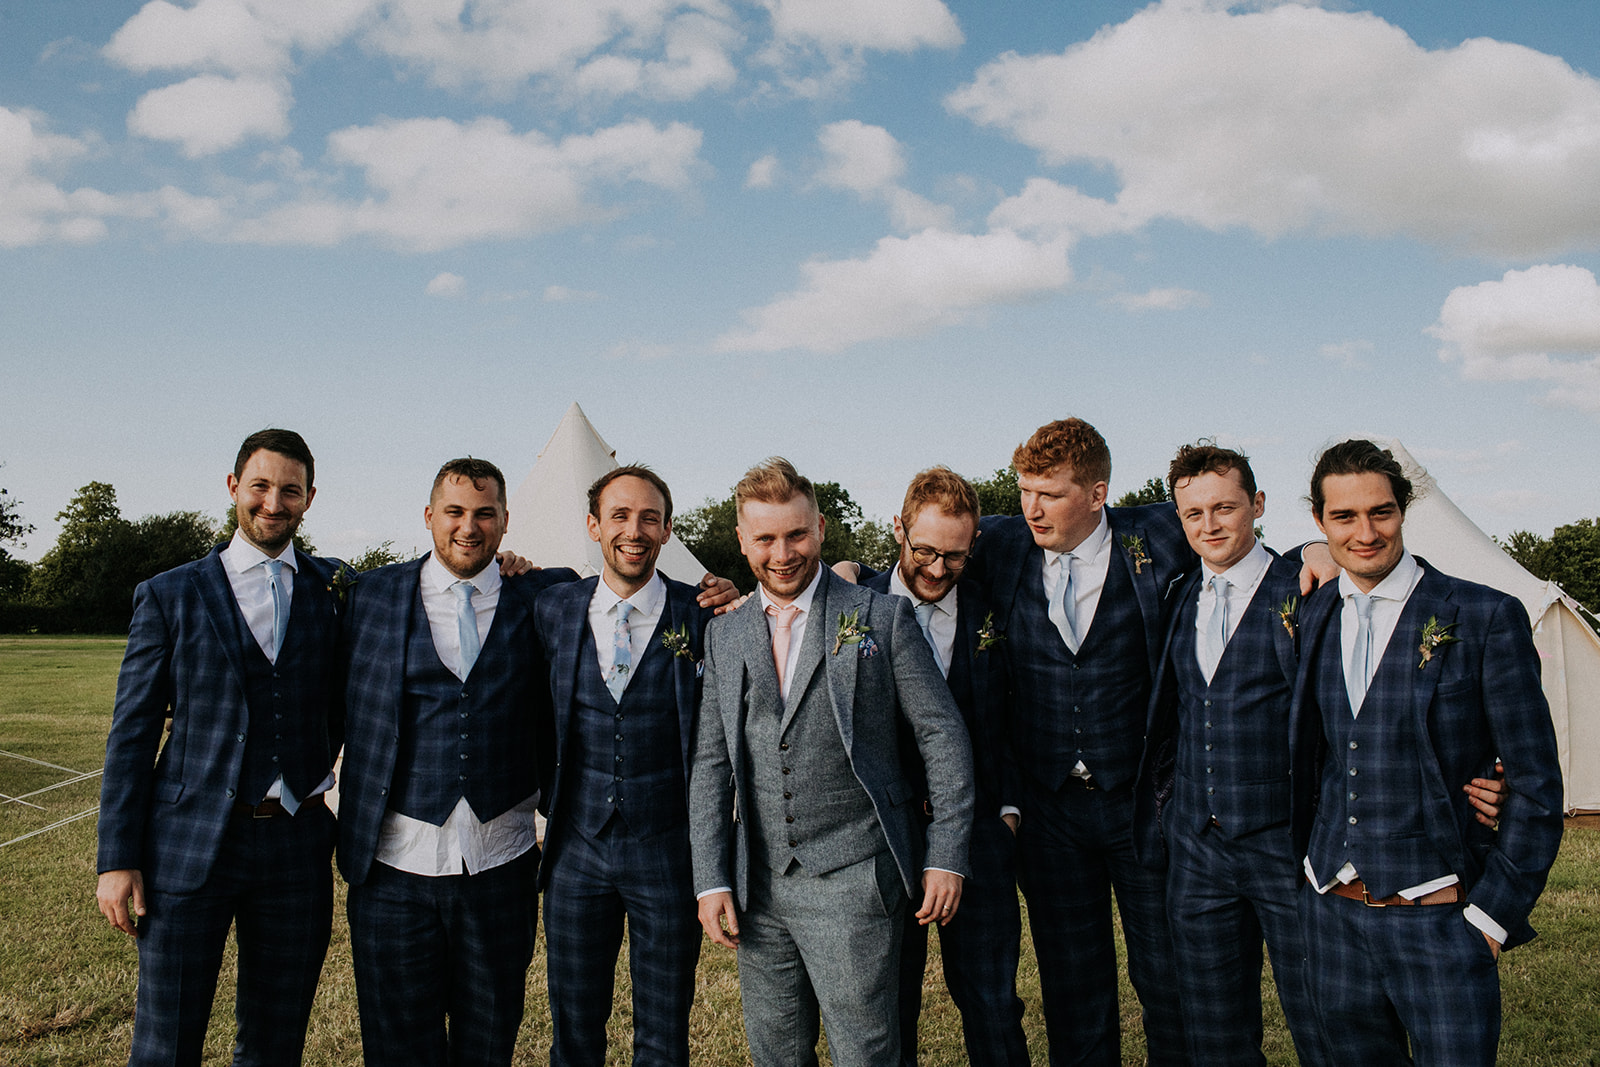 Groom and Groomsmen ready for their cattows farm wedding